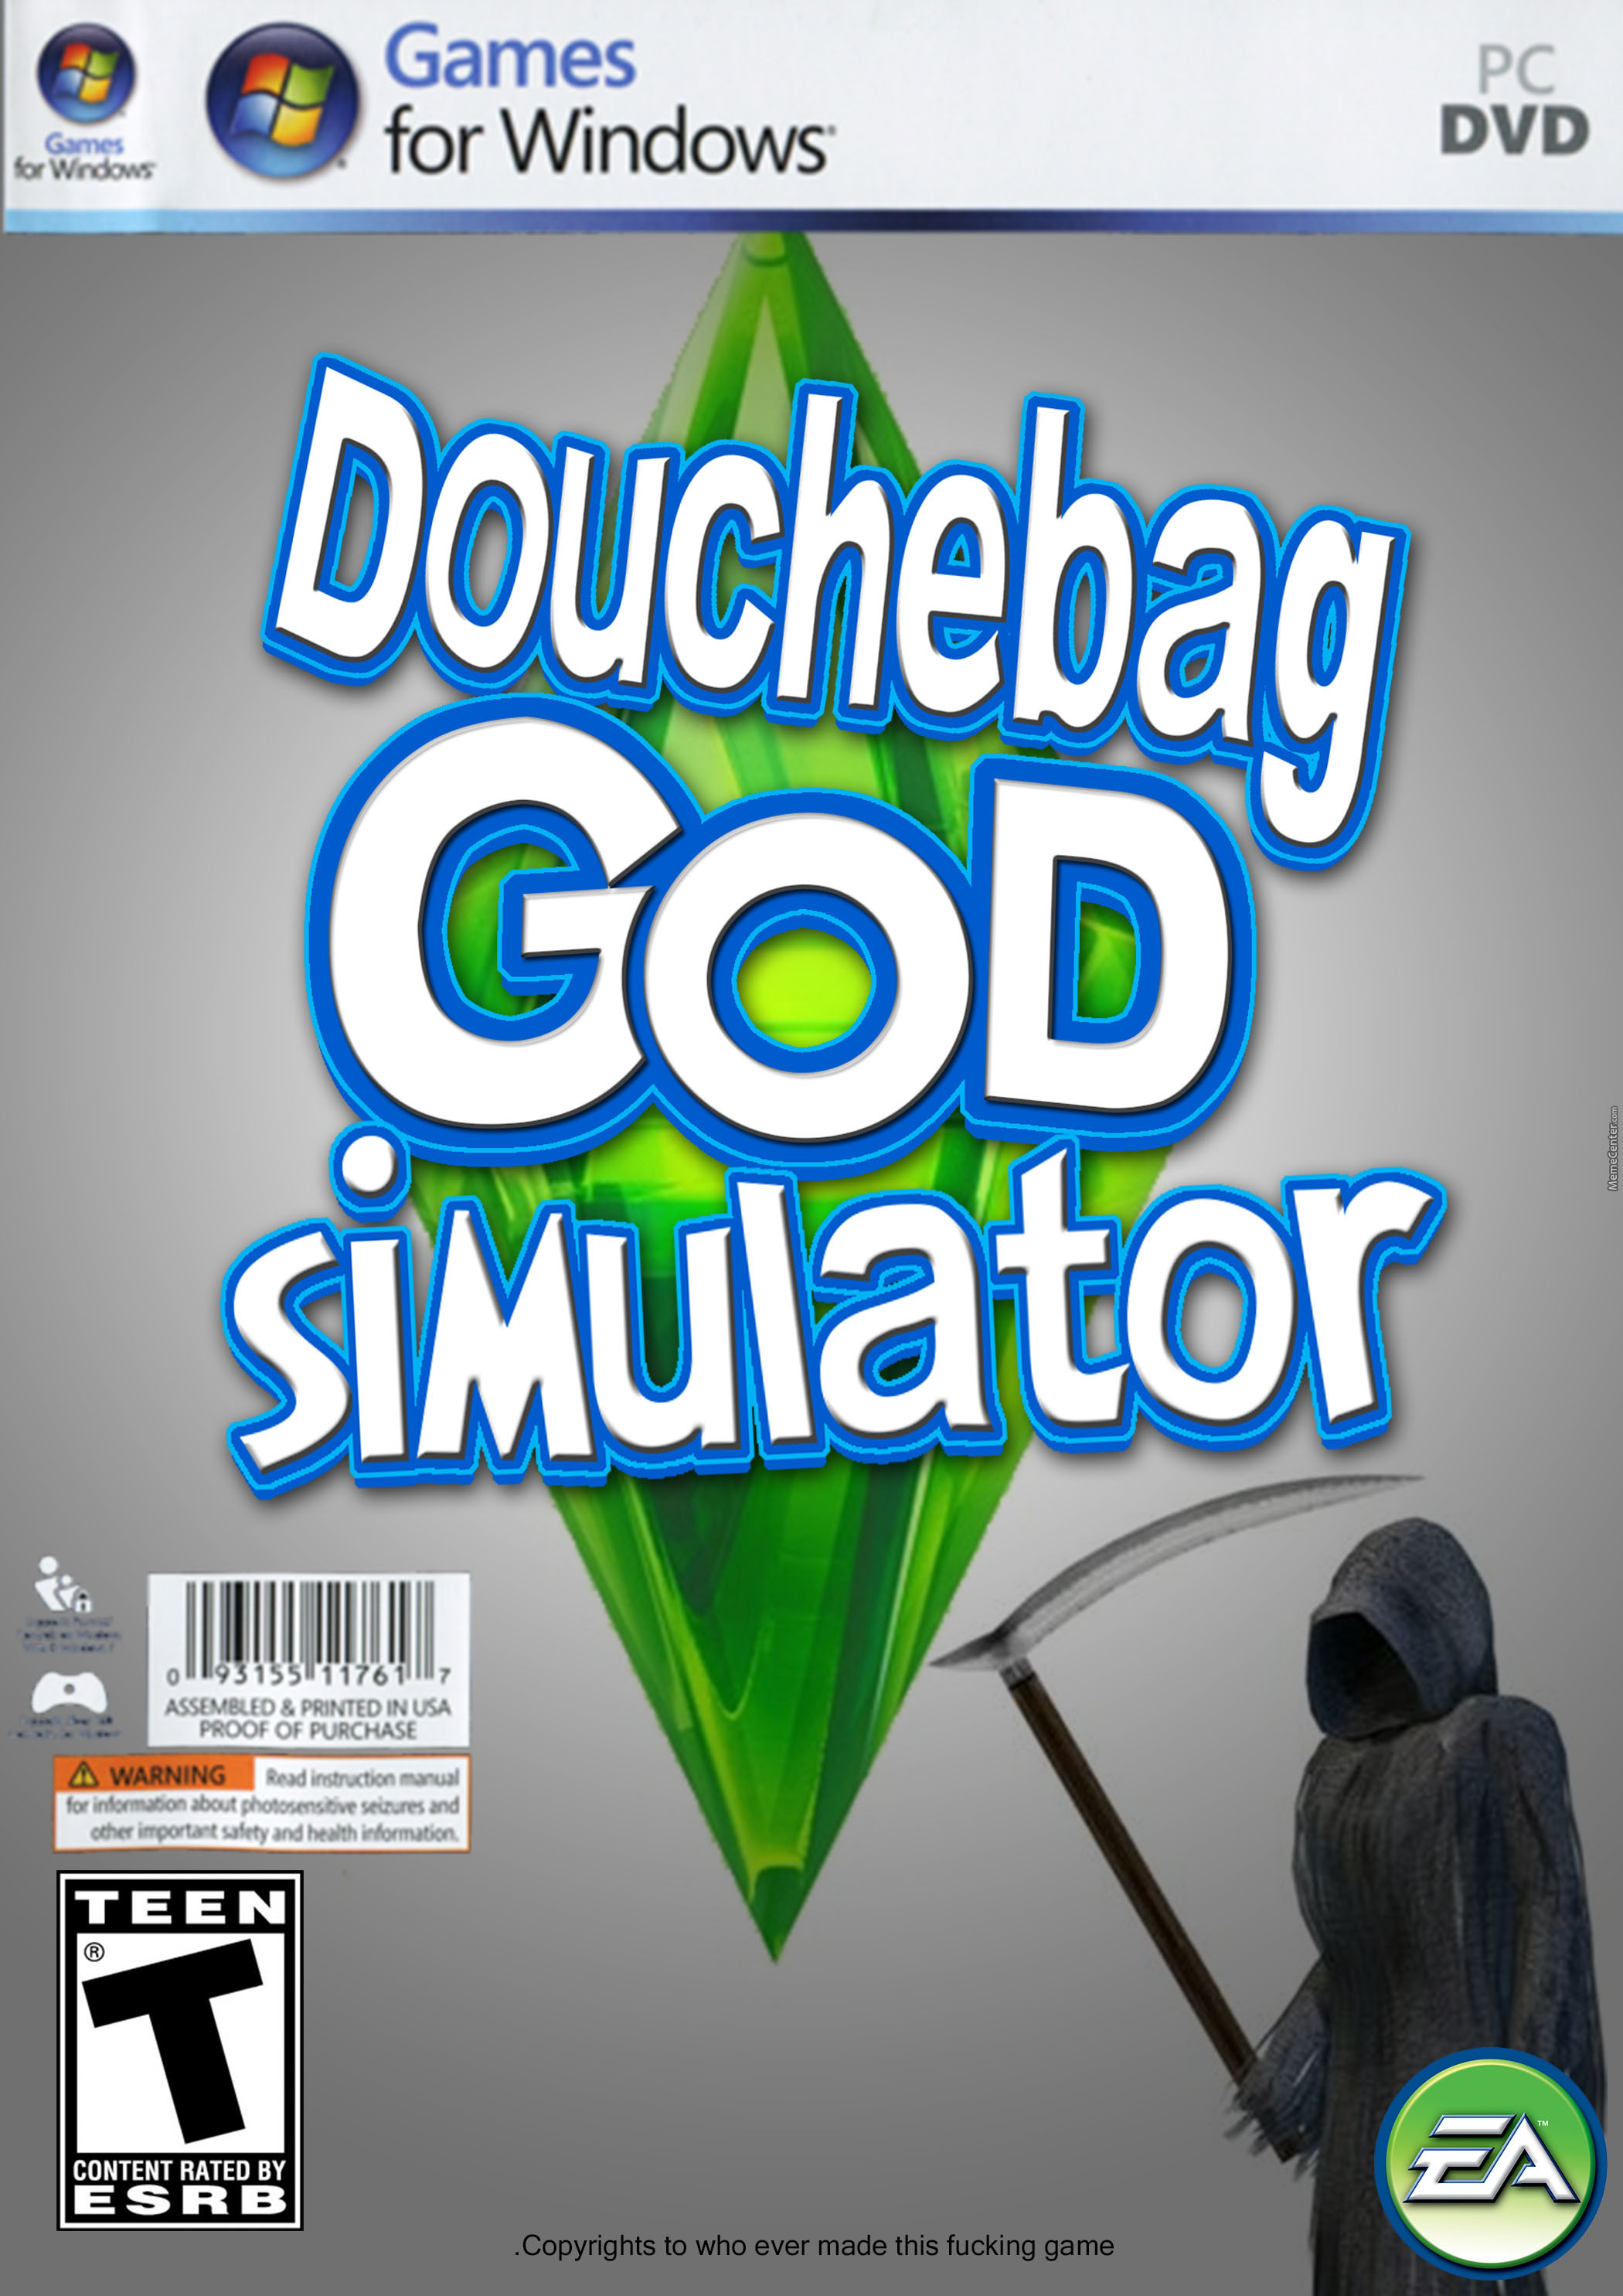 God Made Douchebag, God Being Douchebag. God Is Douchebag